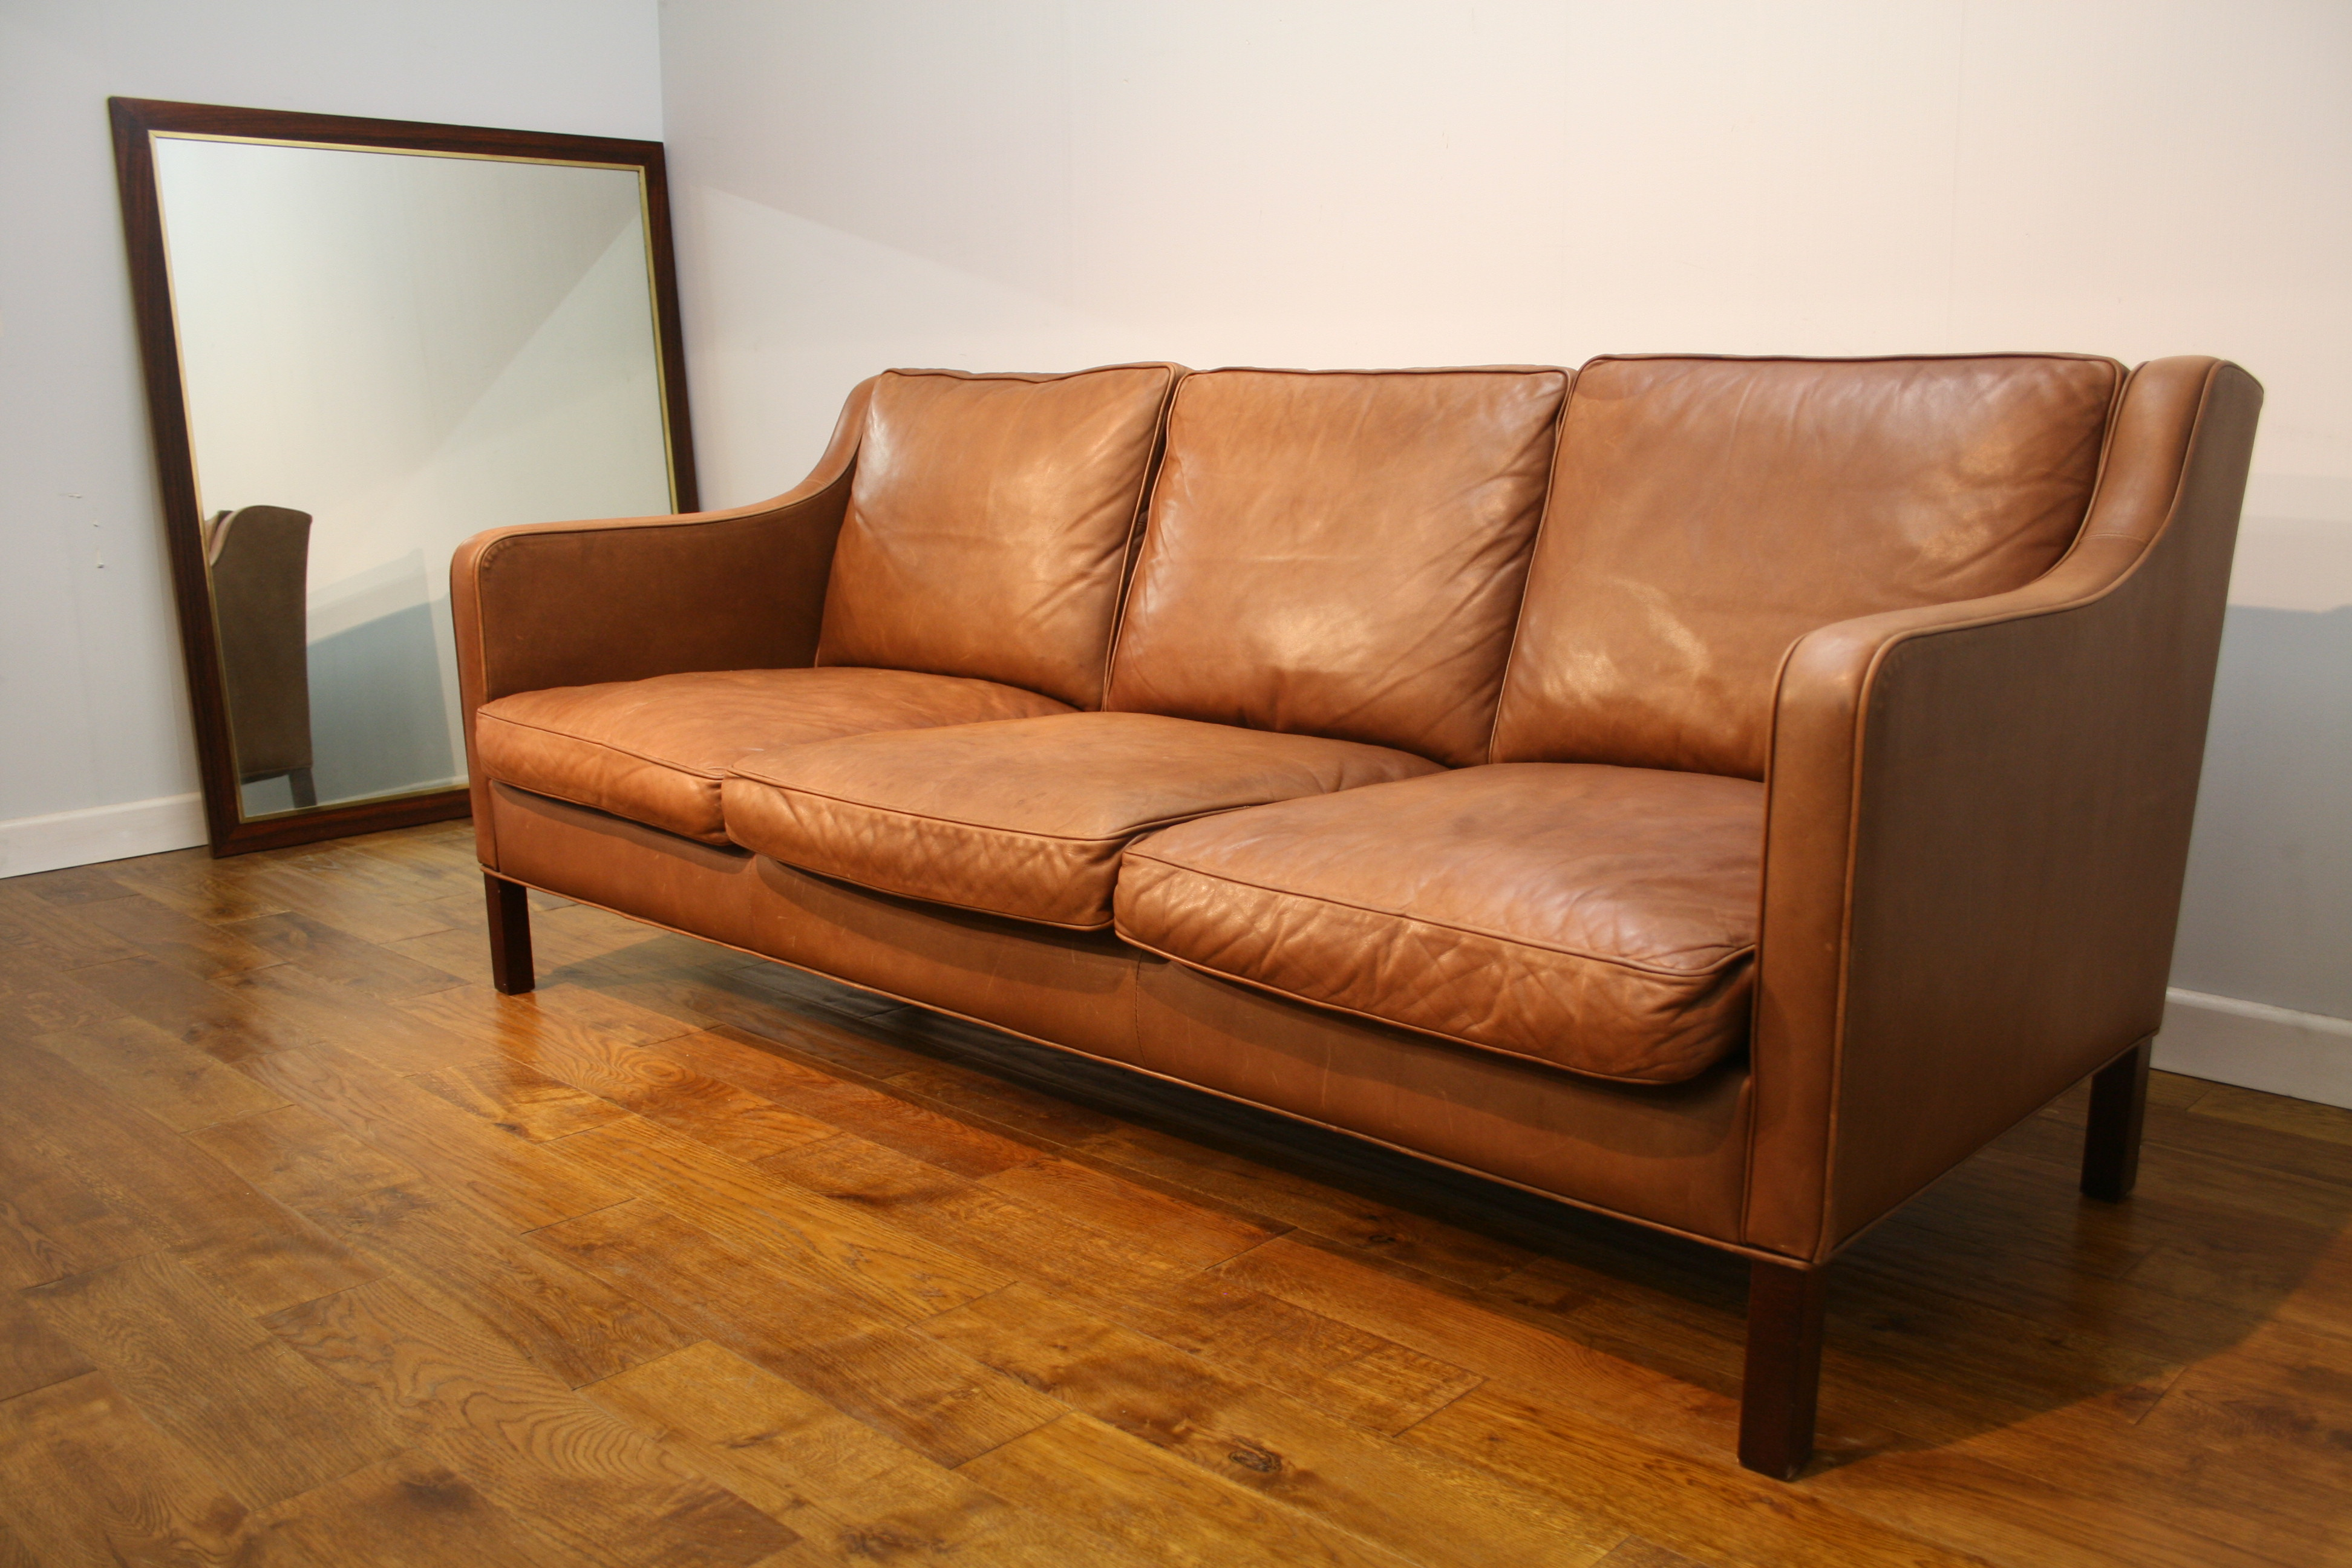 70s Vintage Stouby 3 Seat Leather Sofa Pure Imagination